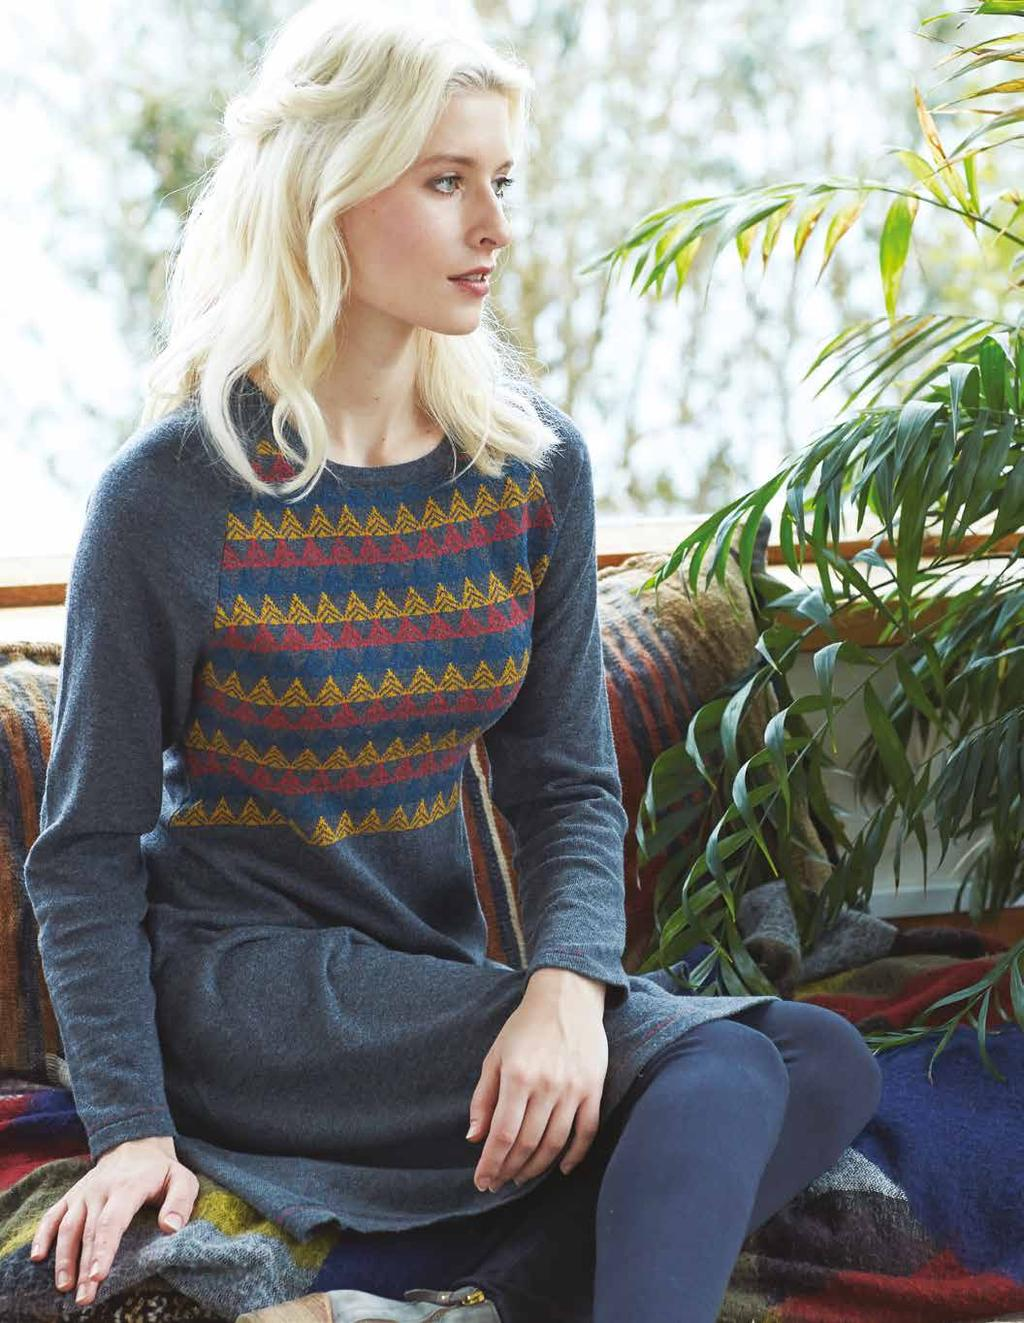 All of our knitwear is made from 100% natural fibres, a